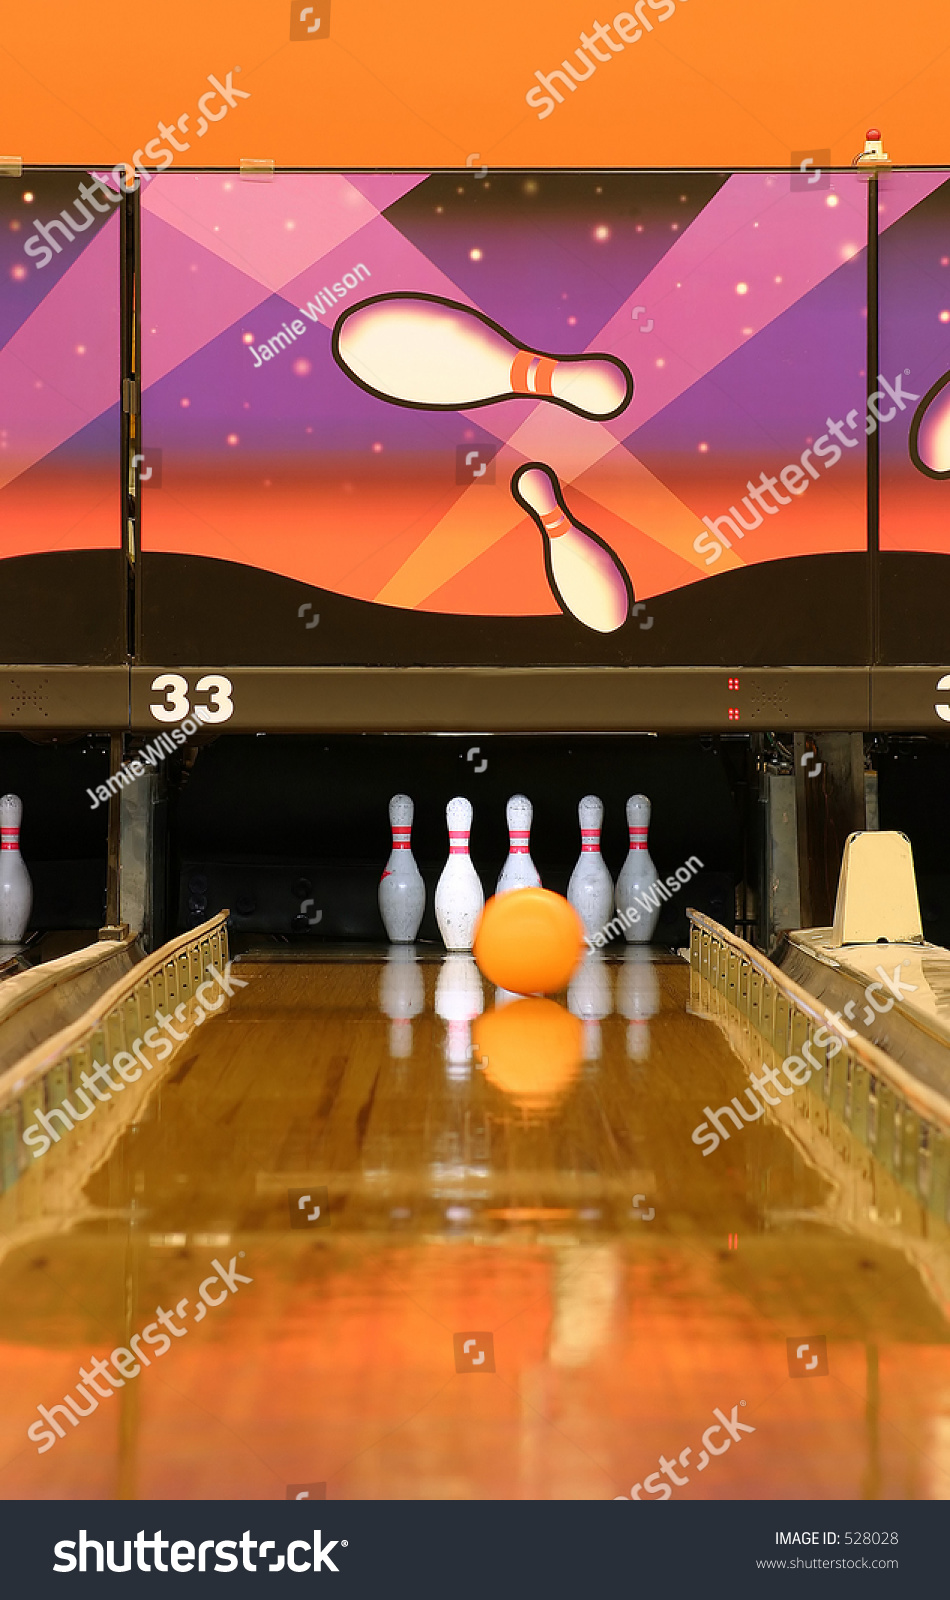 A Bowling Alley Gutter Guards Are Up And Ball Is Heading